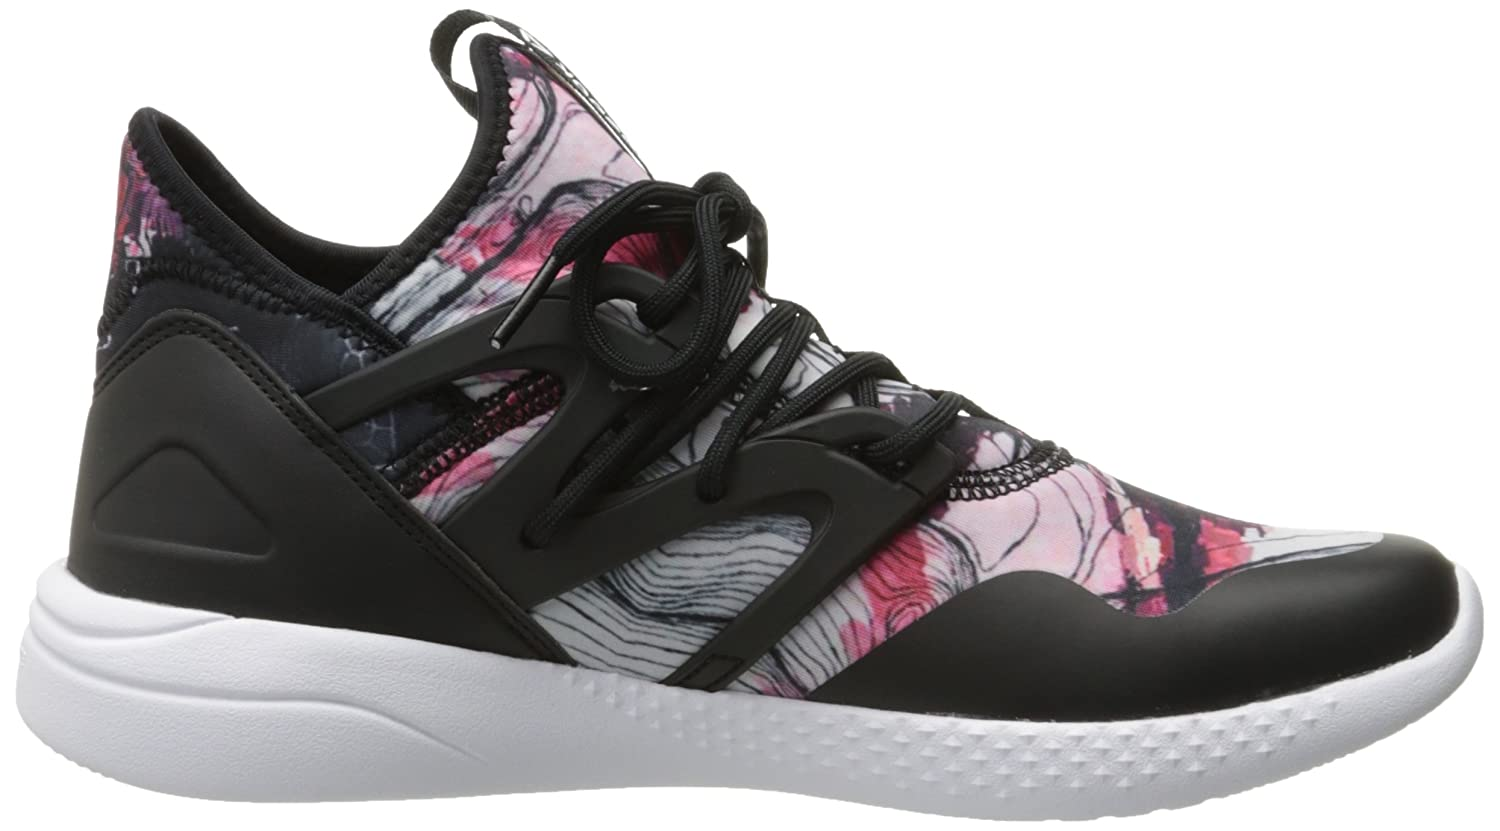 Reebok Women's 9.5 Hayasu Training Shoe B019P5TXF8 9.5 Women's B(M) US|Graphic Black/White 9799a5